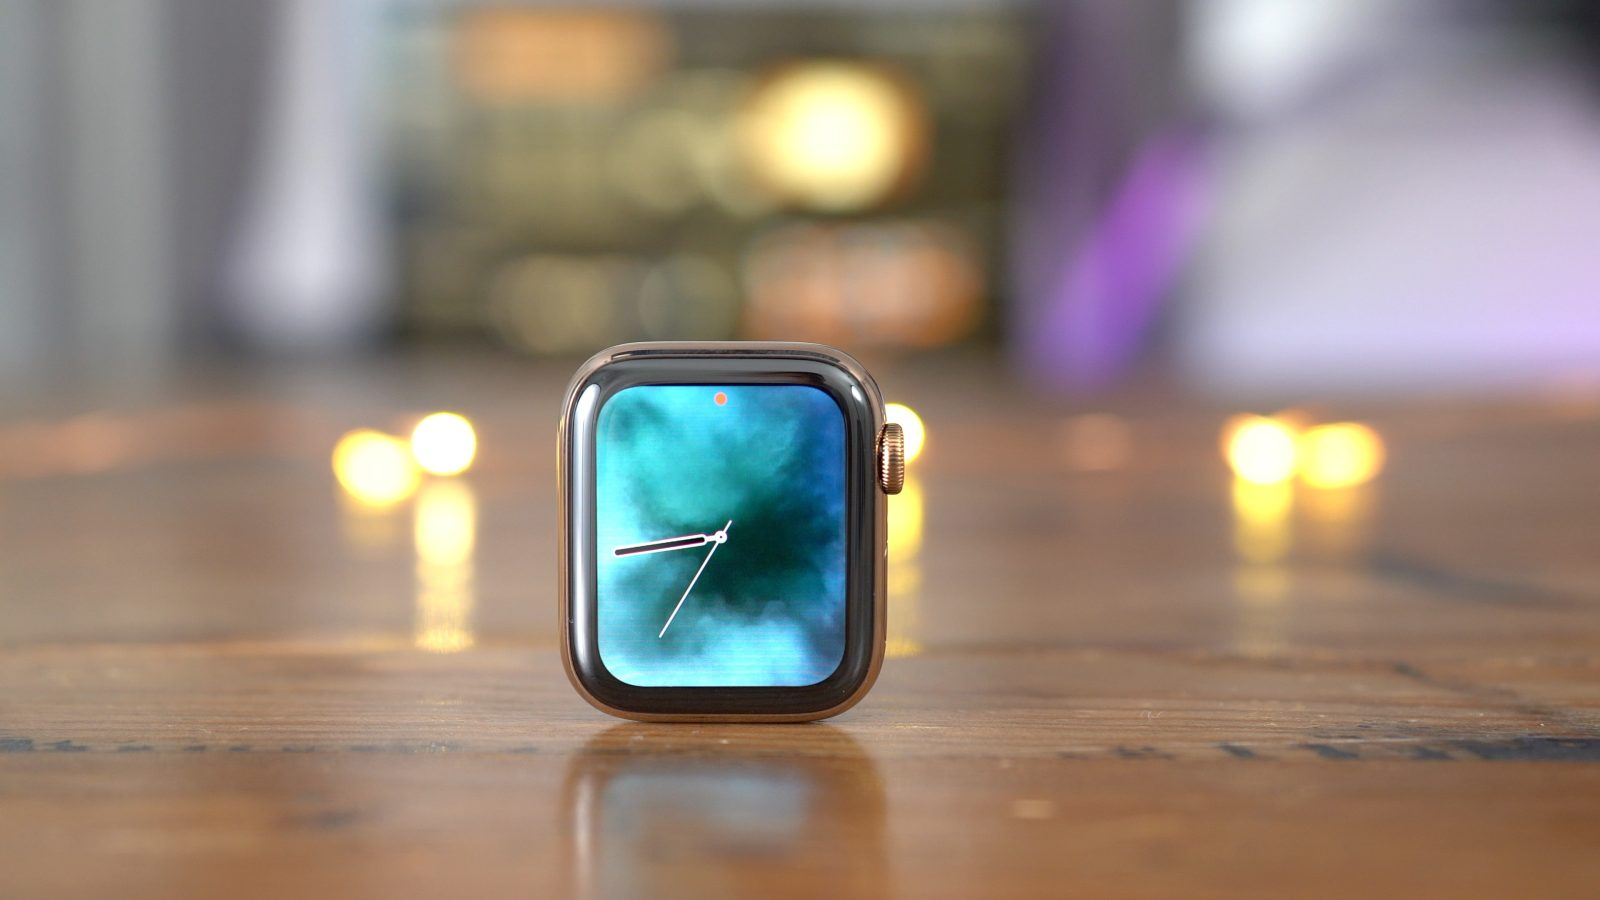 Top Apple Watch Series 4 features [Video]